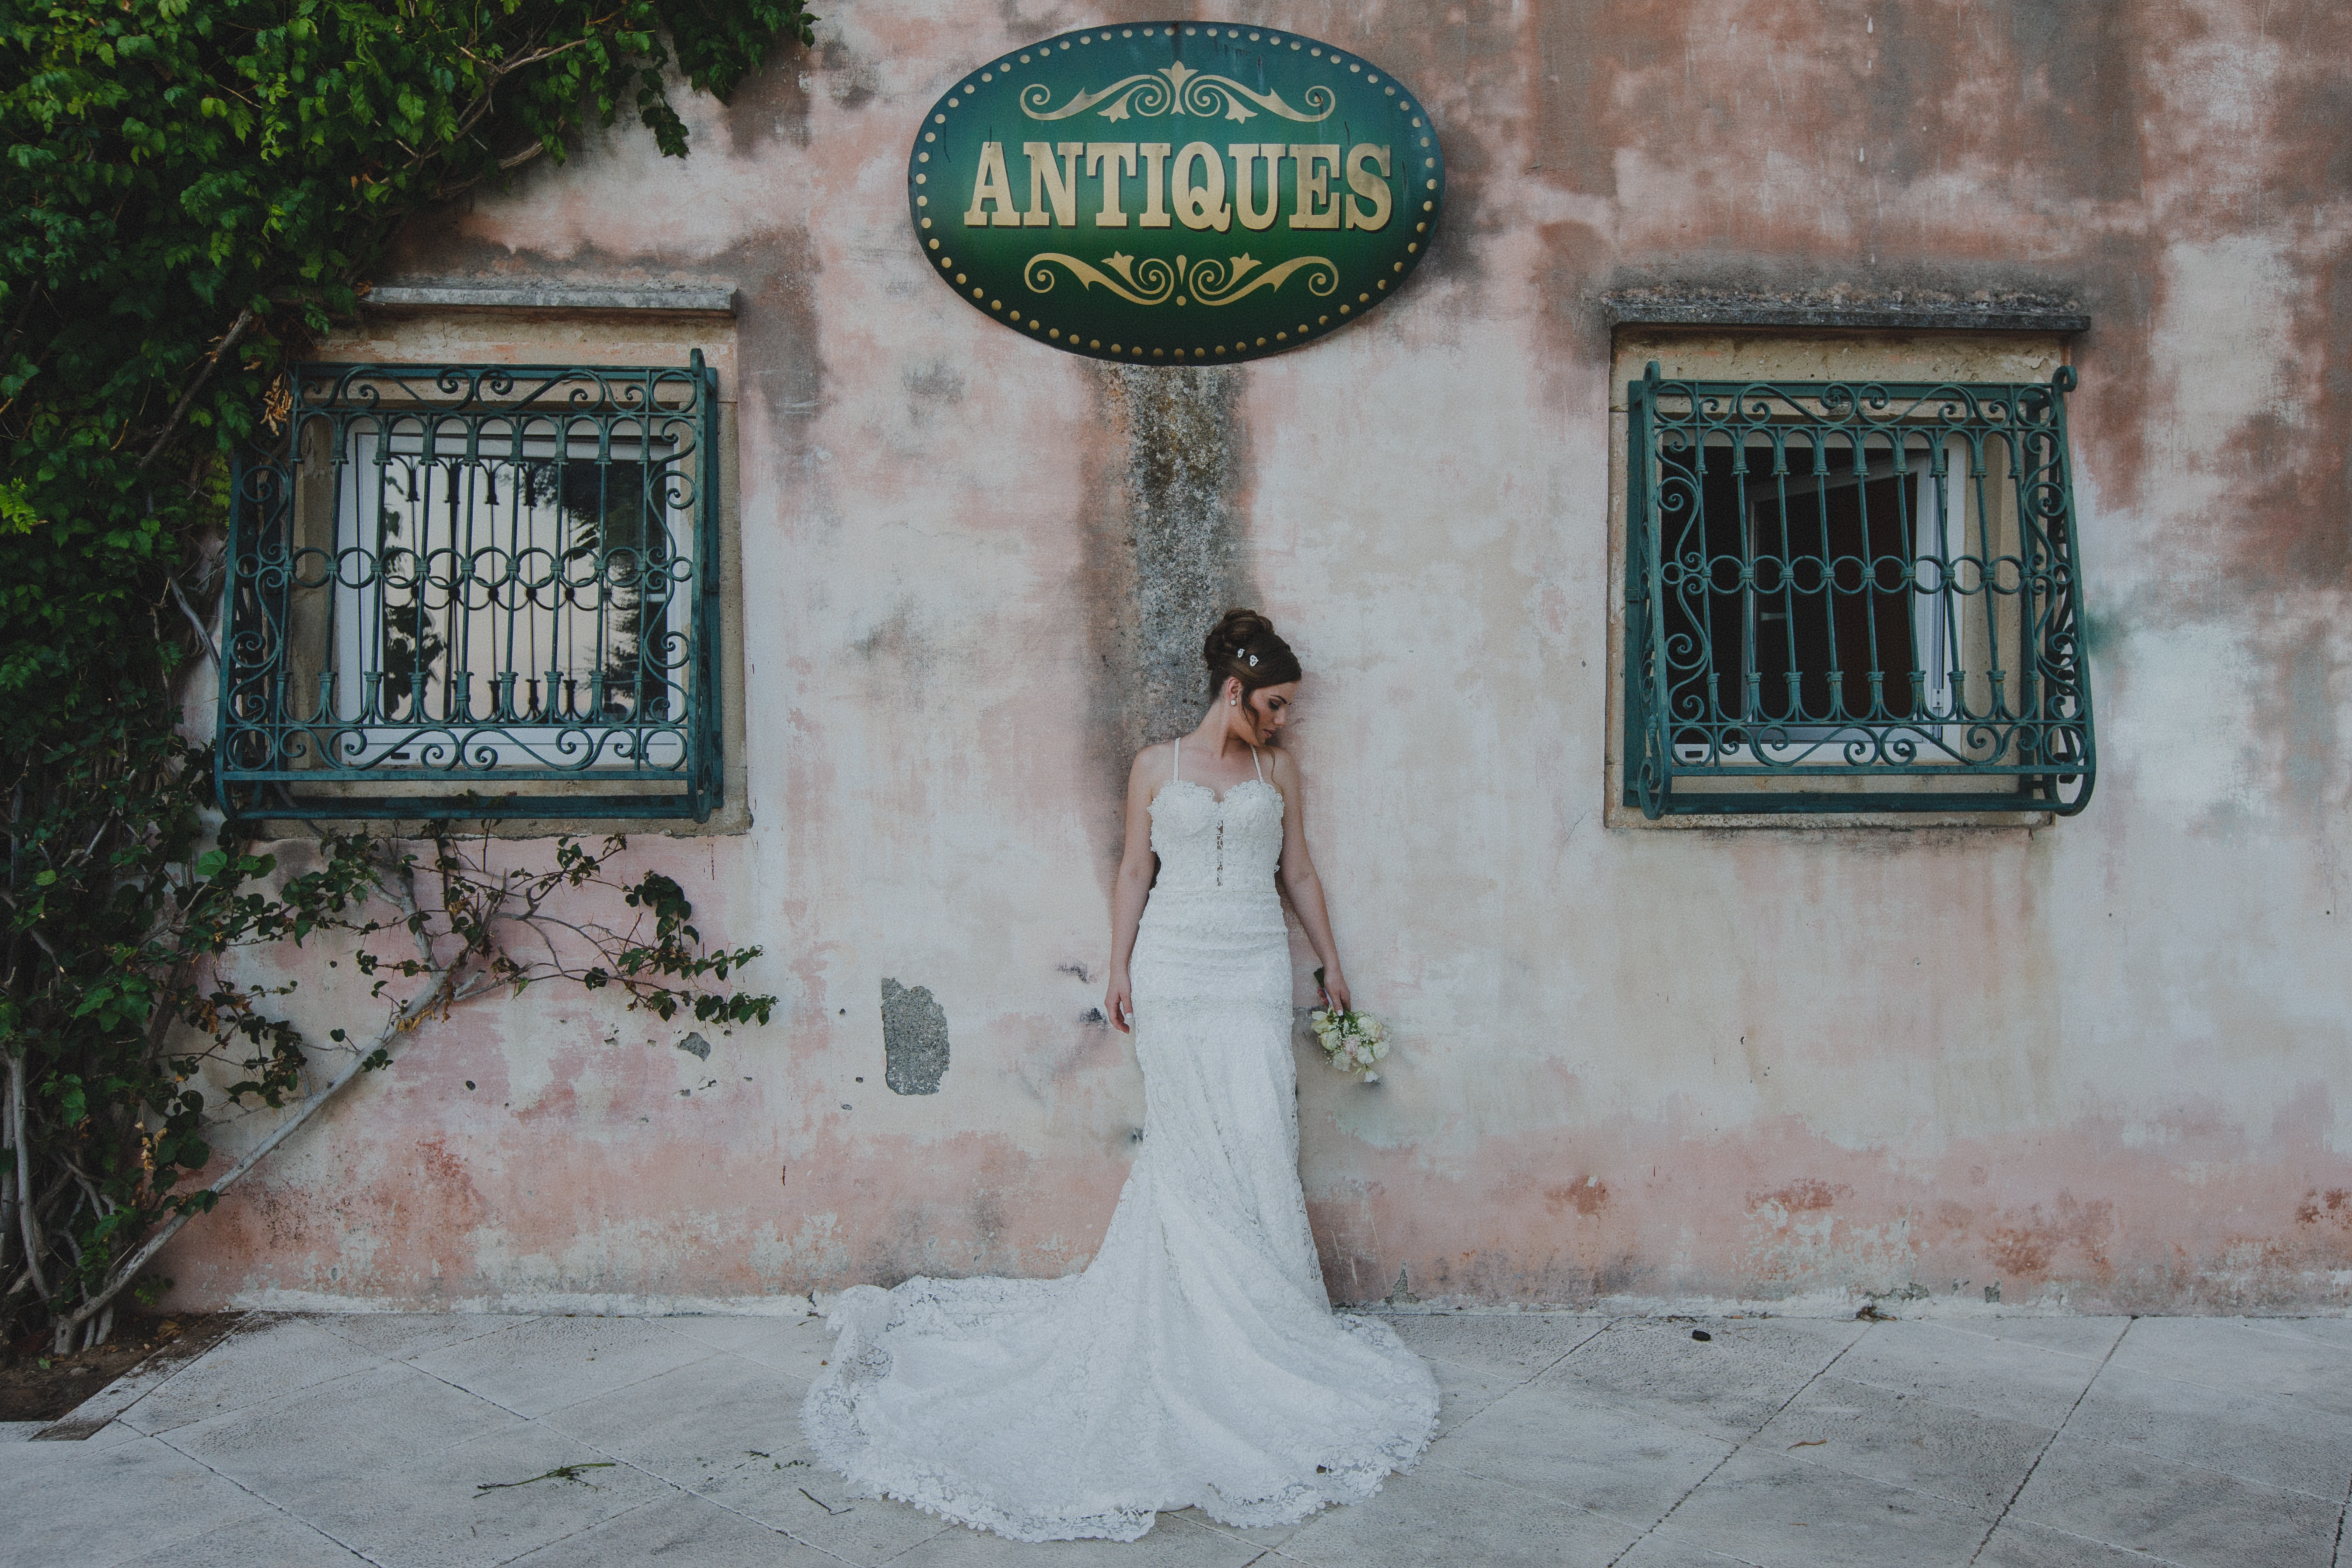 """A woman with styled hair in a white wedding dress carrying a bouquet of flowers beside a fading pink wall with gated windows, growing ivy, and a sign that says """"ANTIQUES"""""""